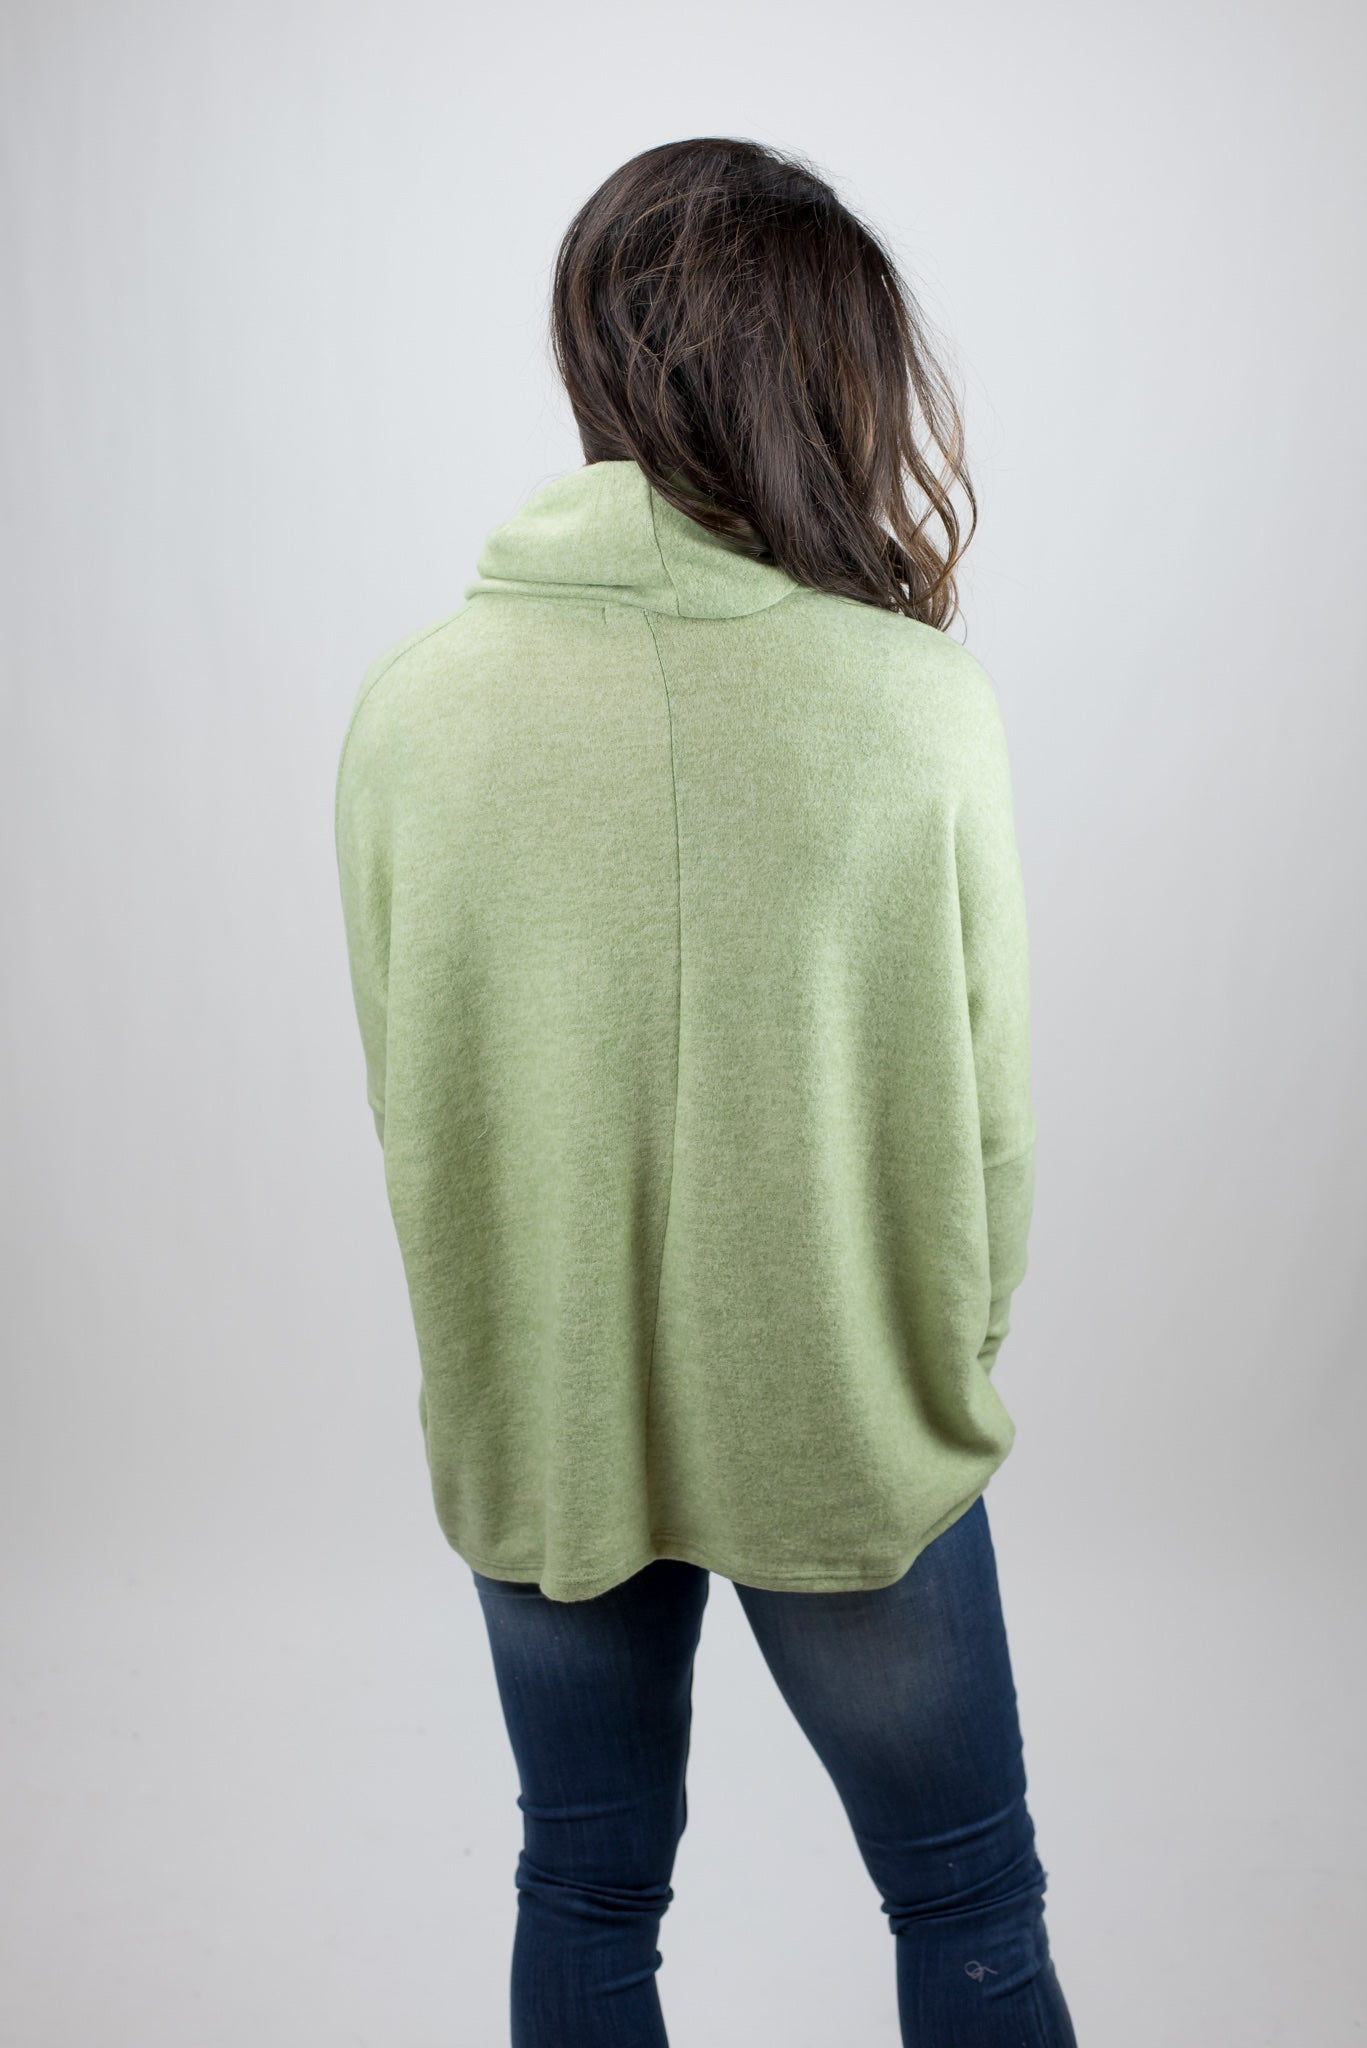 Snowy Days Long Sleeve Turtle Neck - Sage